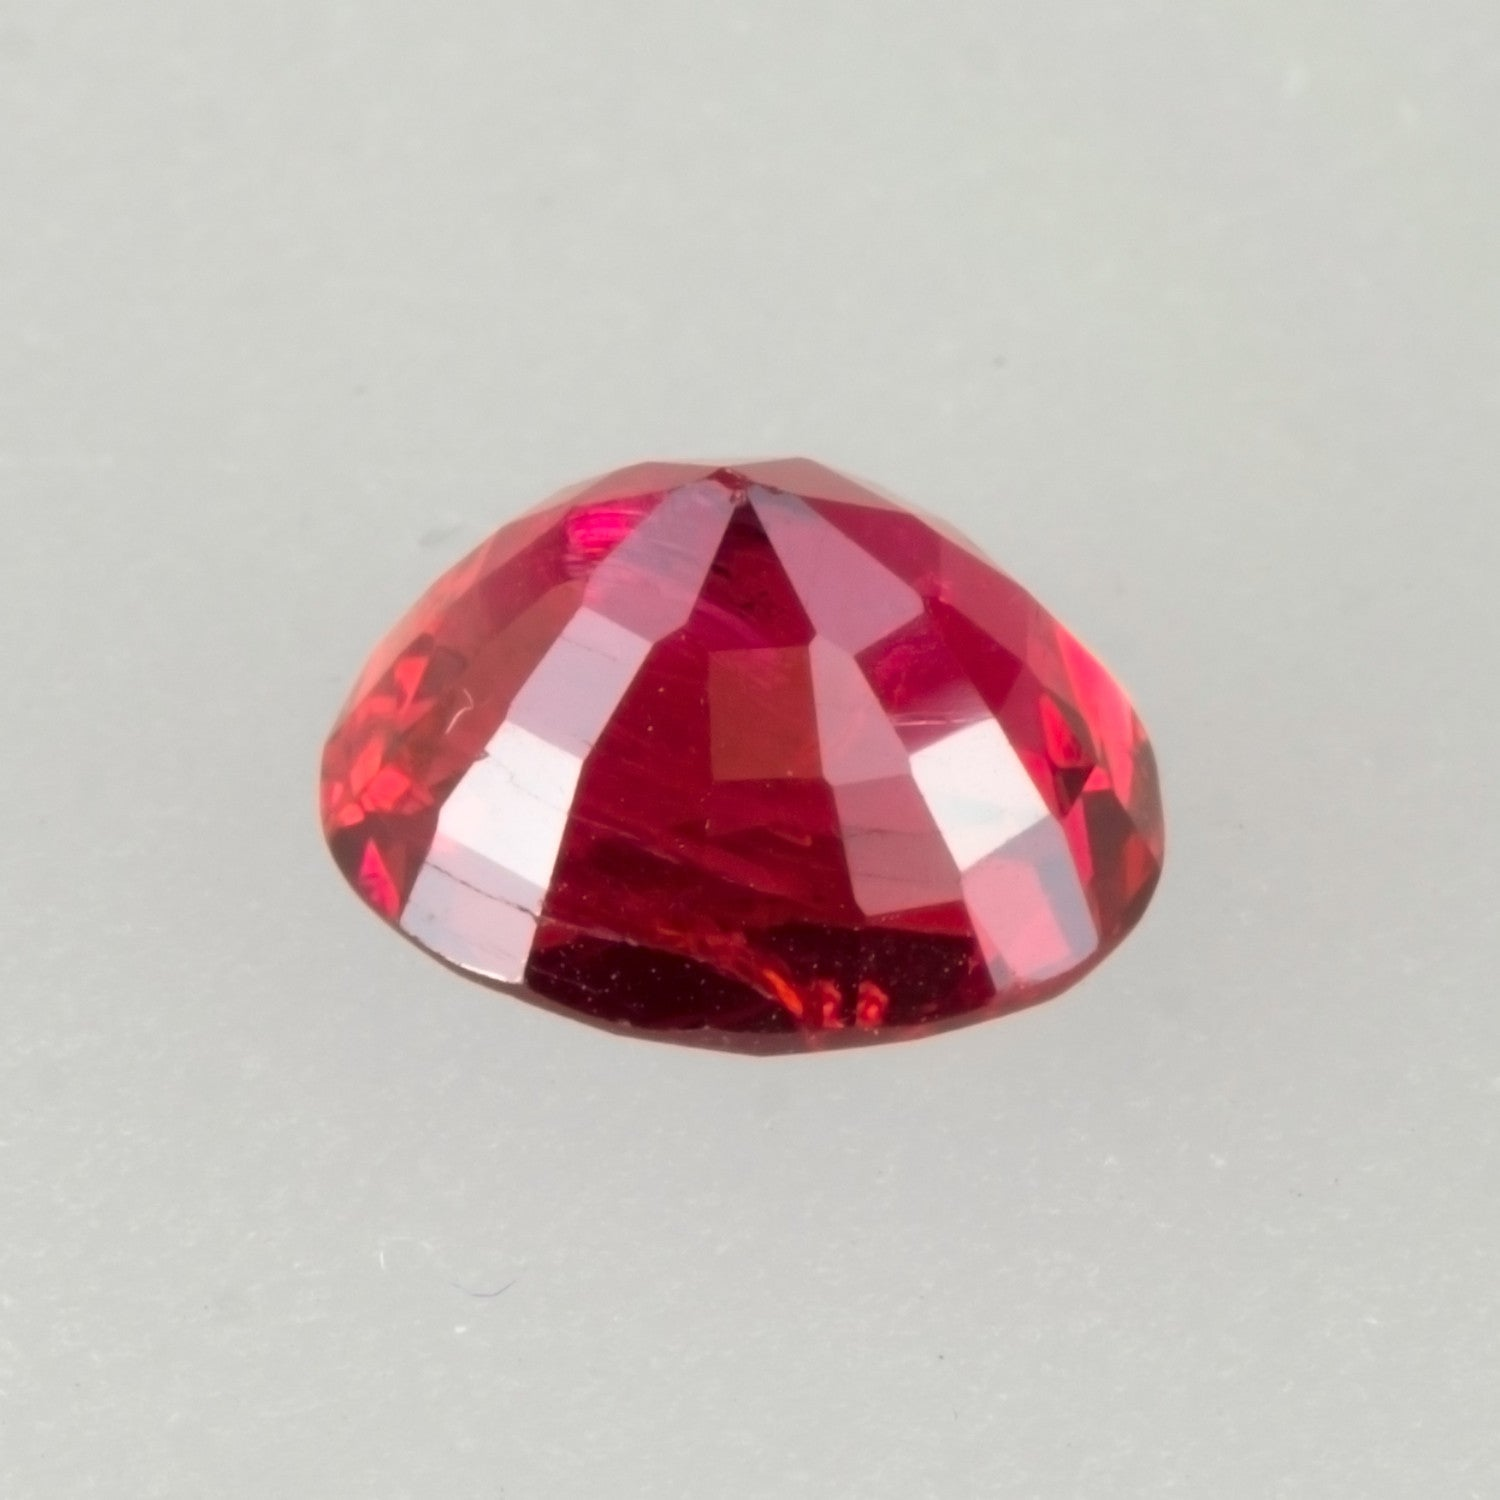 2.21ct Top Red Oval Cut Spinel